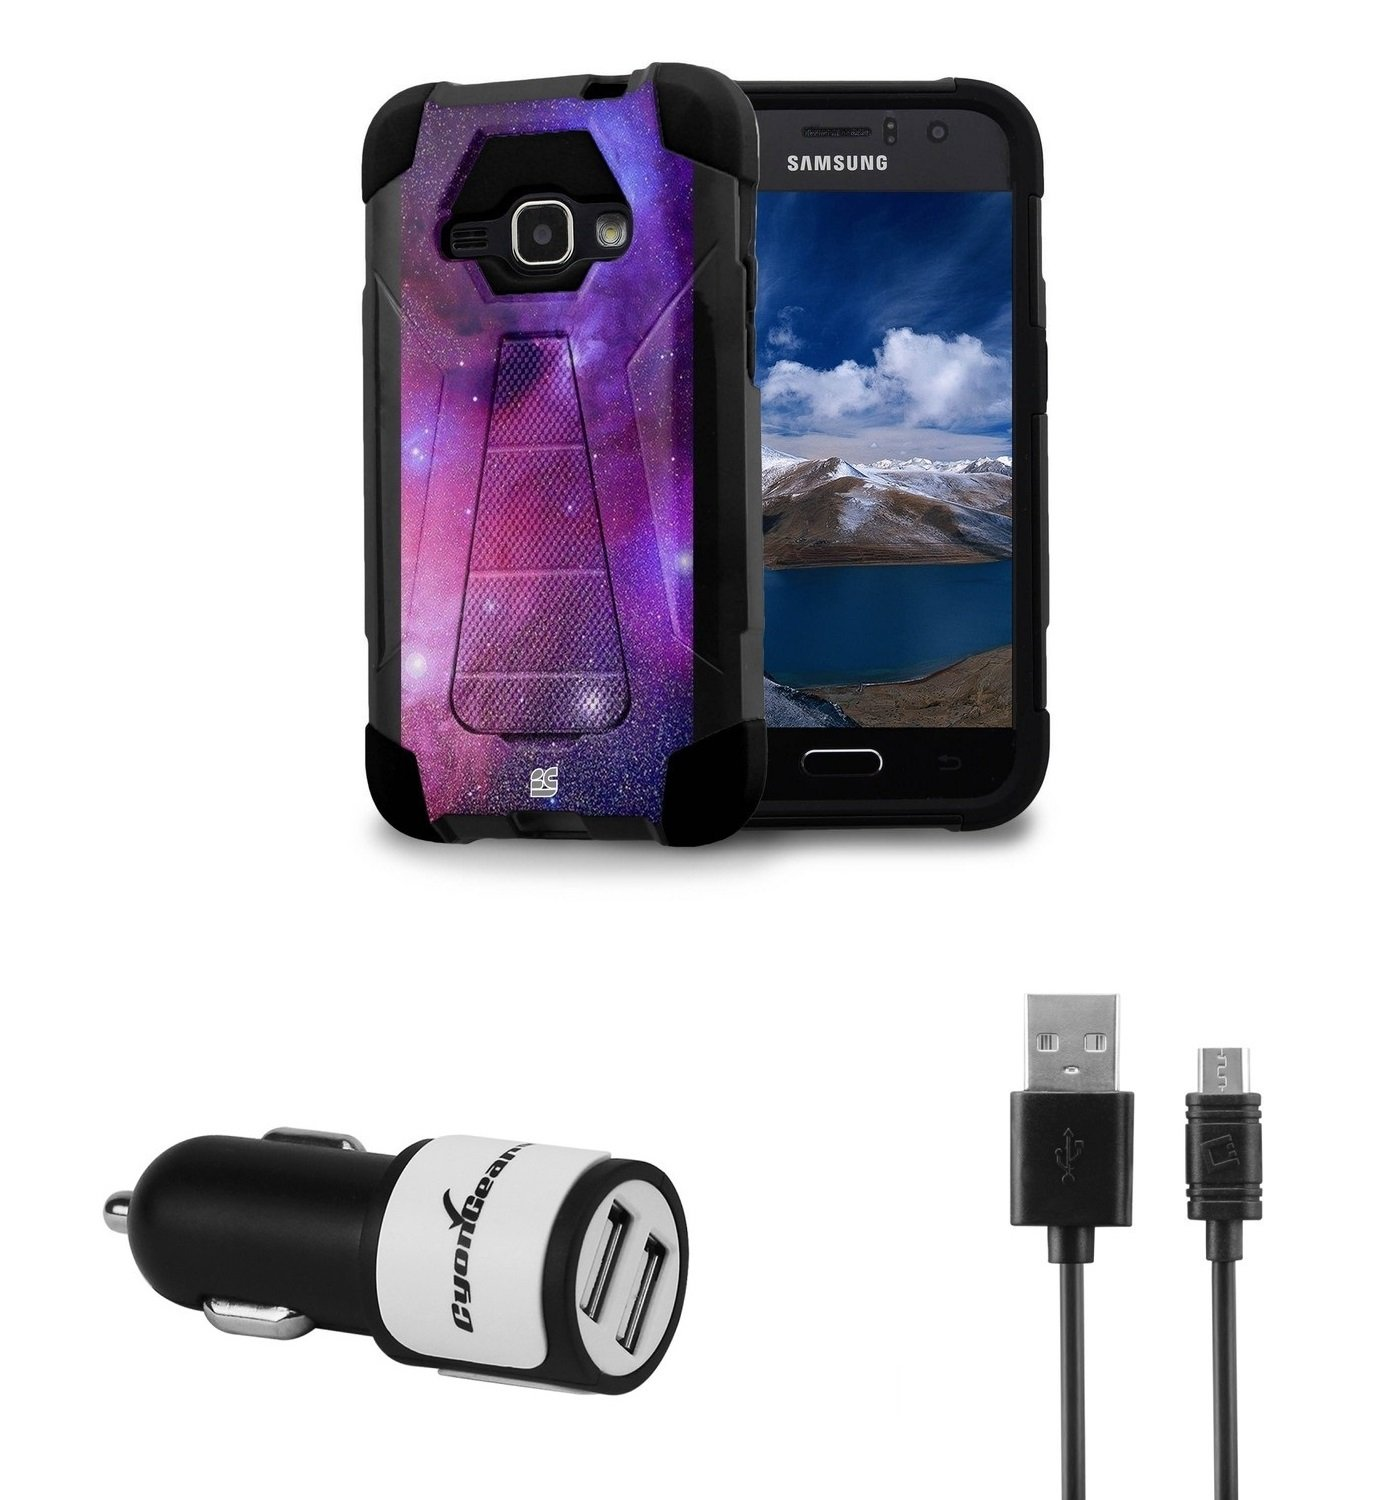 Samsung Galaxy Luna - [Nebula] Dual Armor Kickstand Case, Atom LED and 10W / 2. 1A Dual Port Car Charger with Micro USB Cable